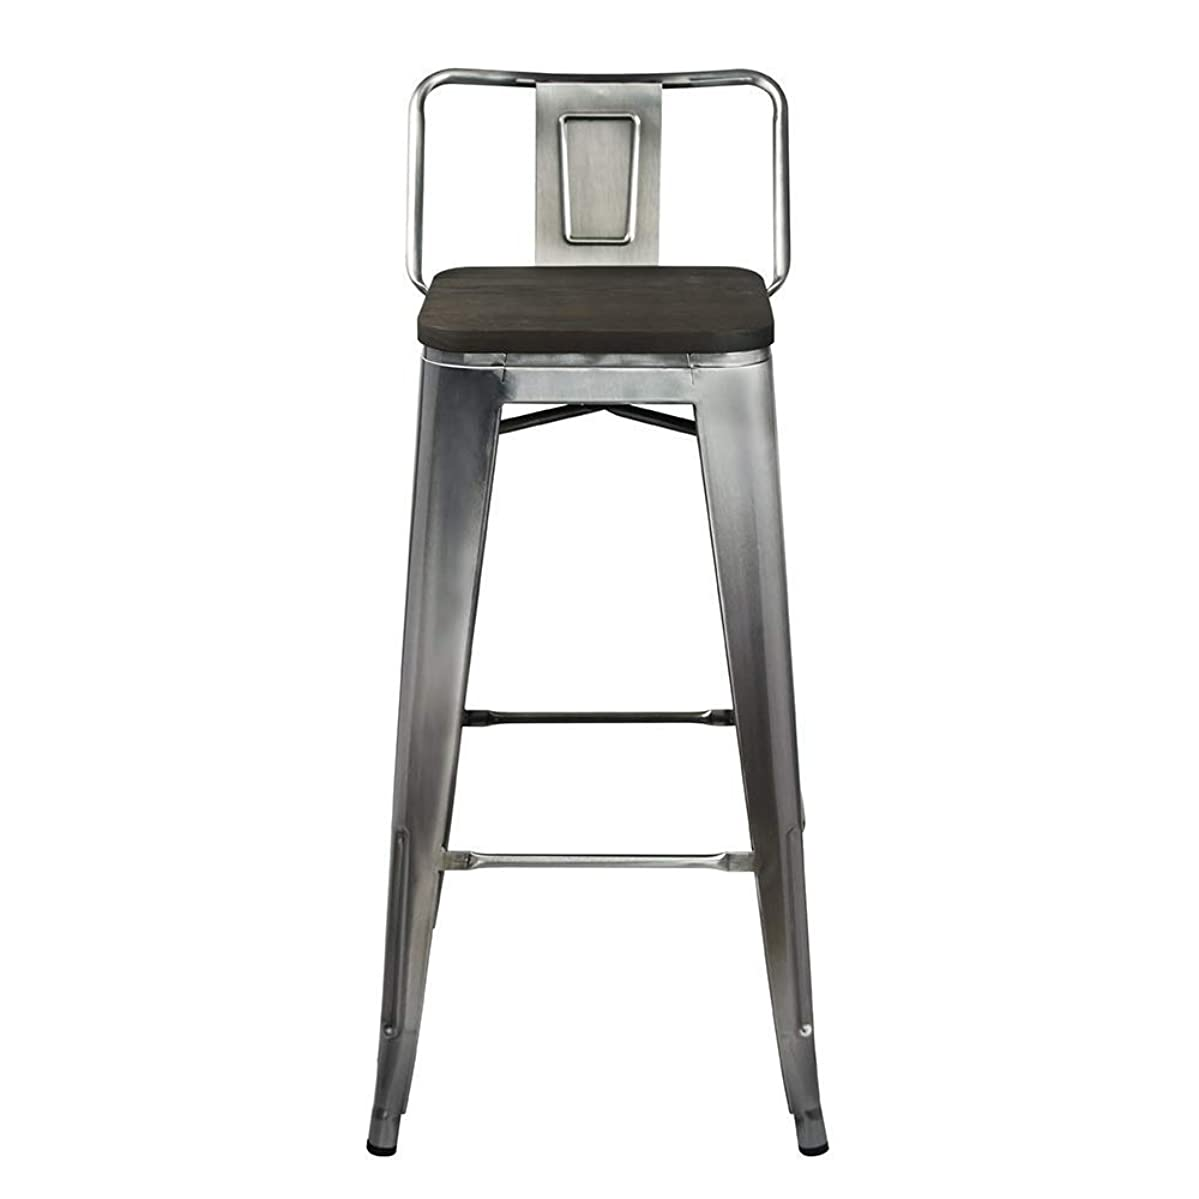 GIA 30-Inch Low Back Stool with Wooden Seat, Gunmetal/Dark Wood, 2-Pack